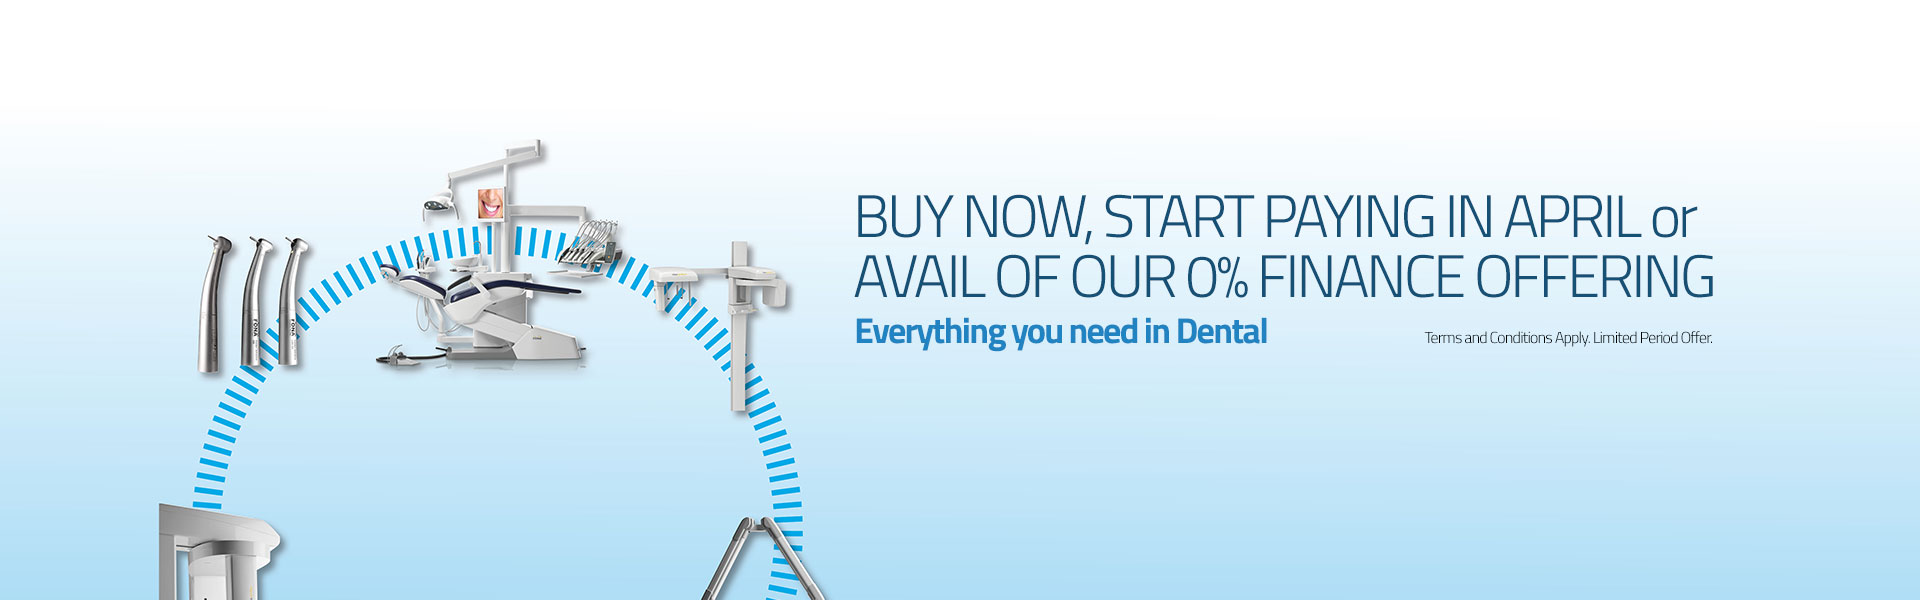 Dental Equipment Offer